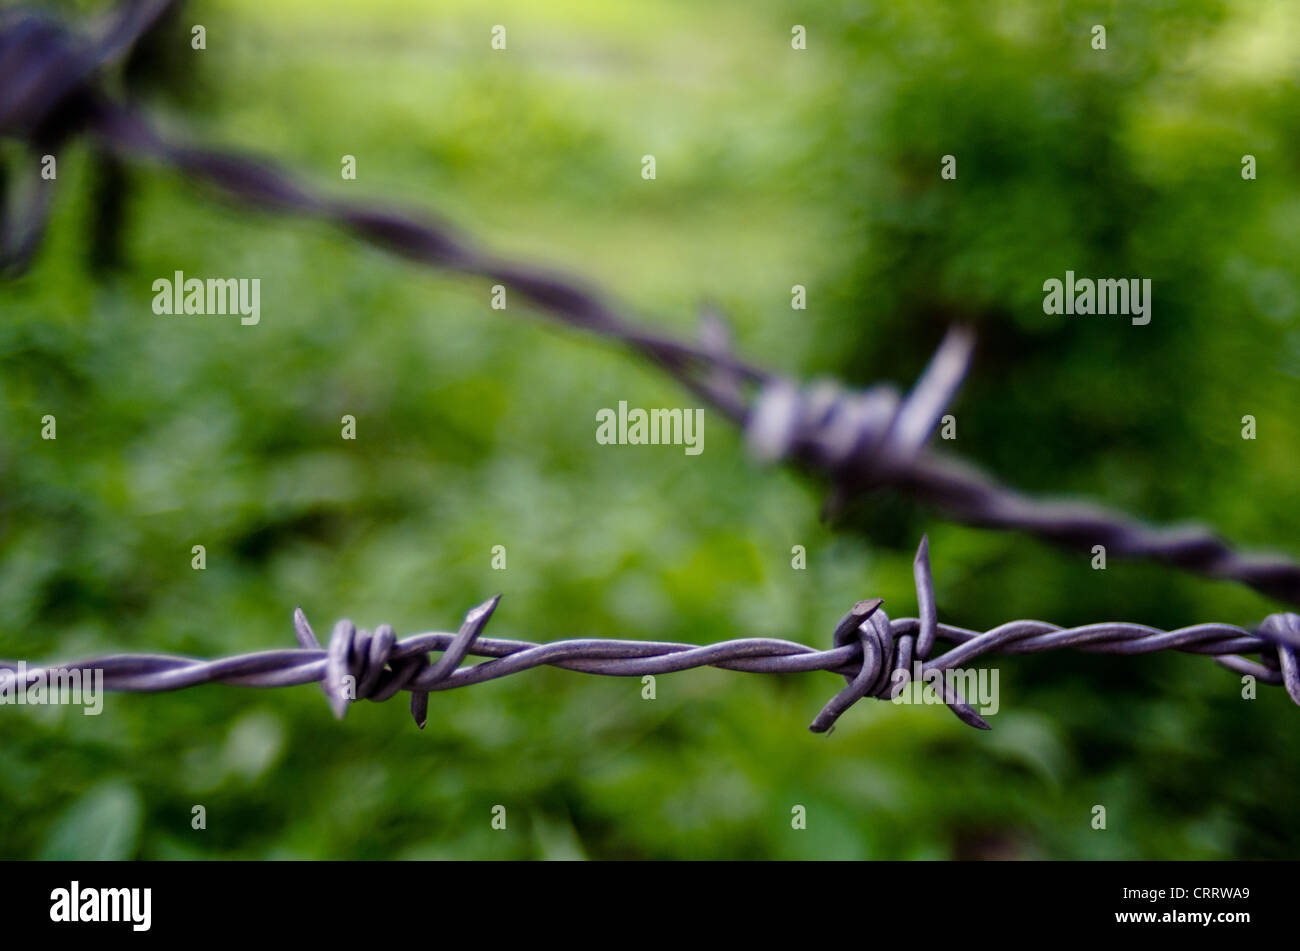 Barbed wire fence against out of focus green outdoor background. - Stock Image